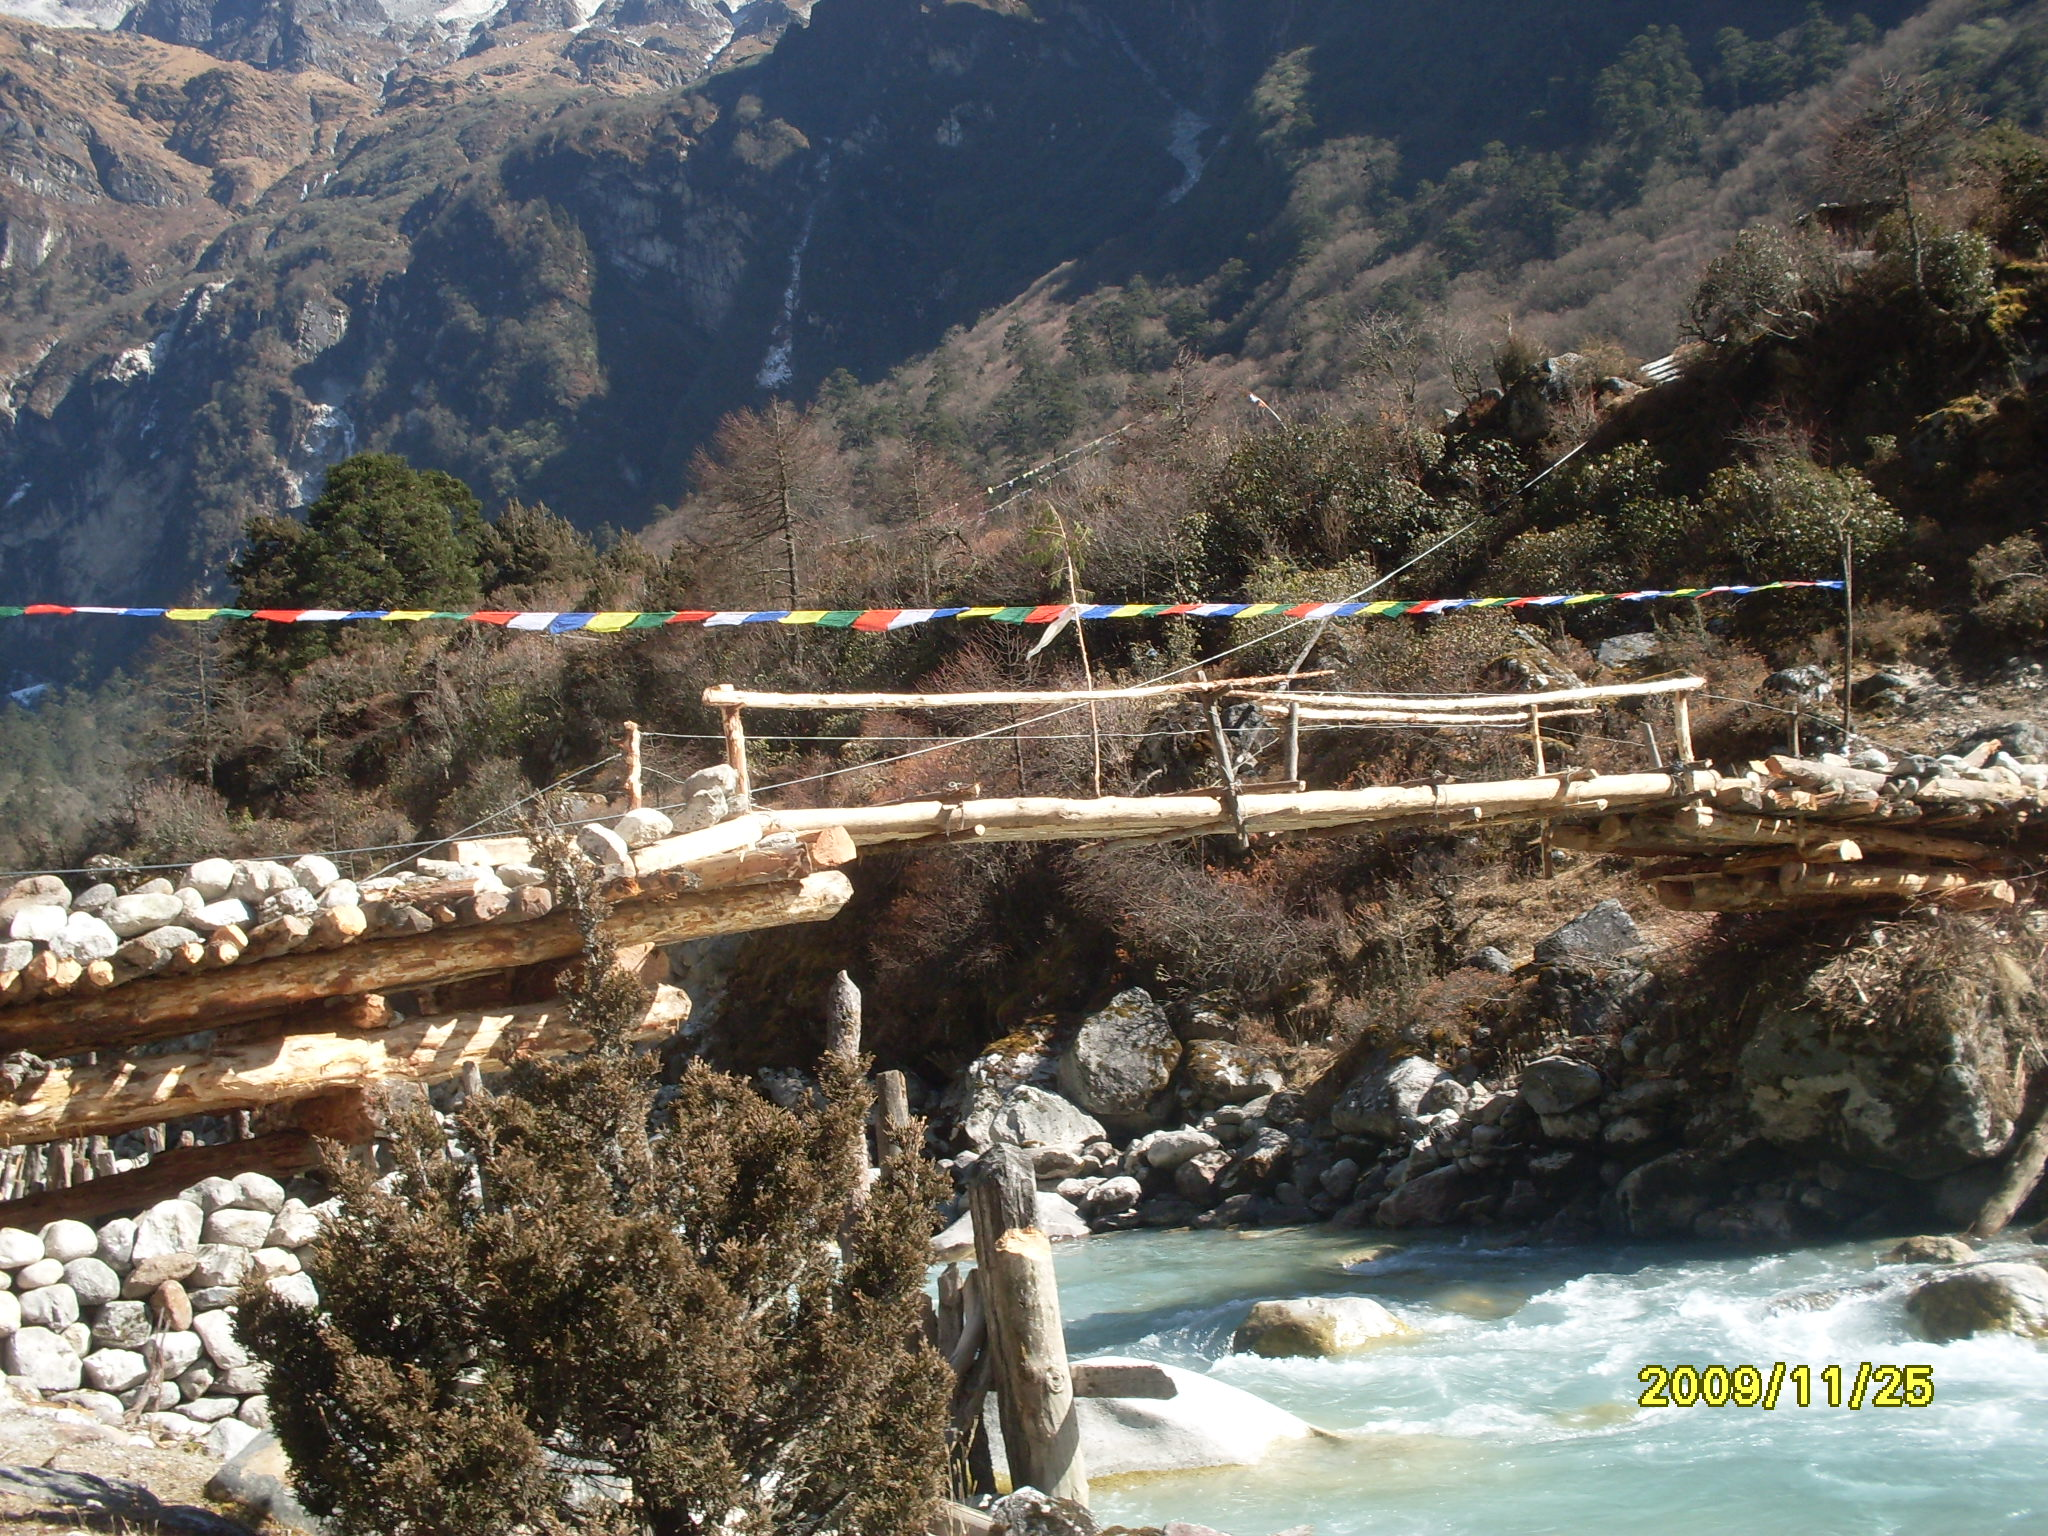 Gunsa Bridge